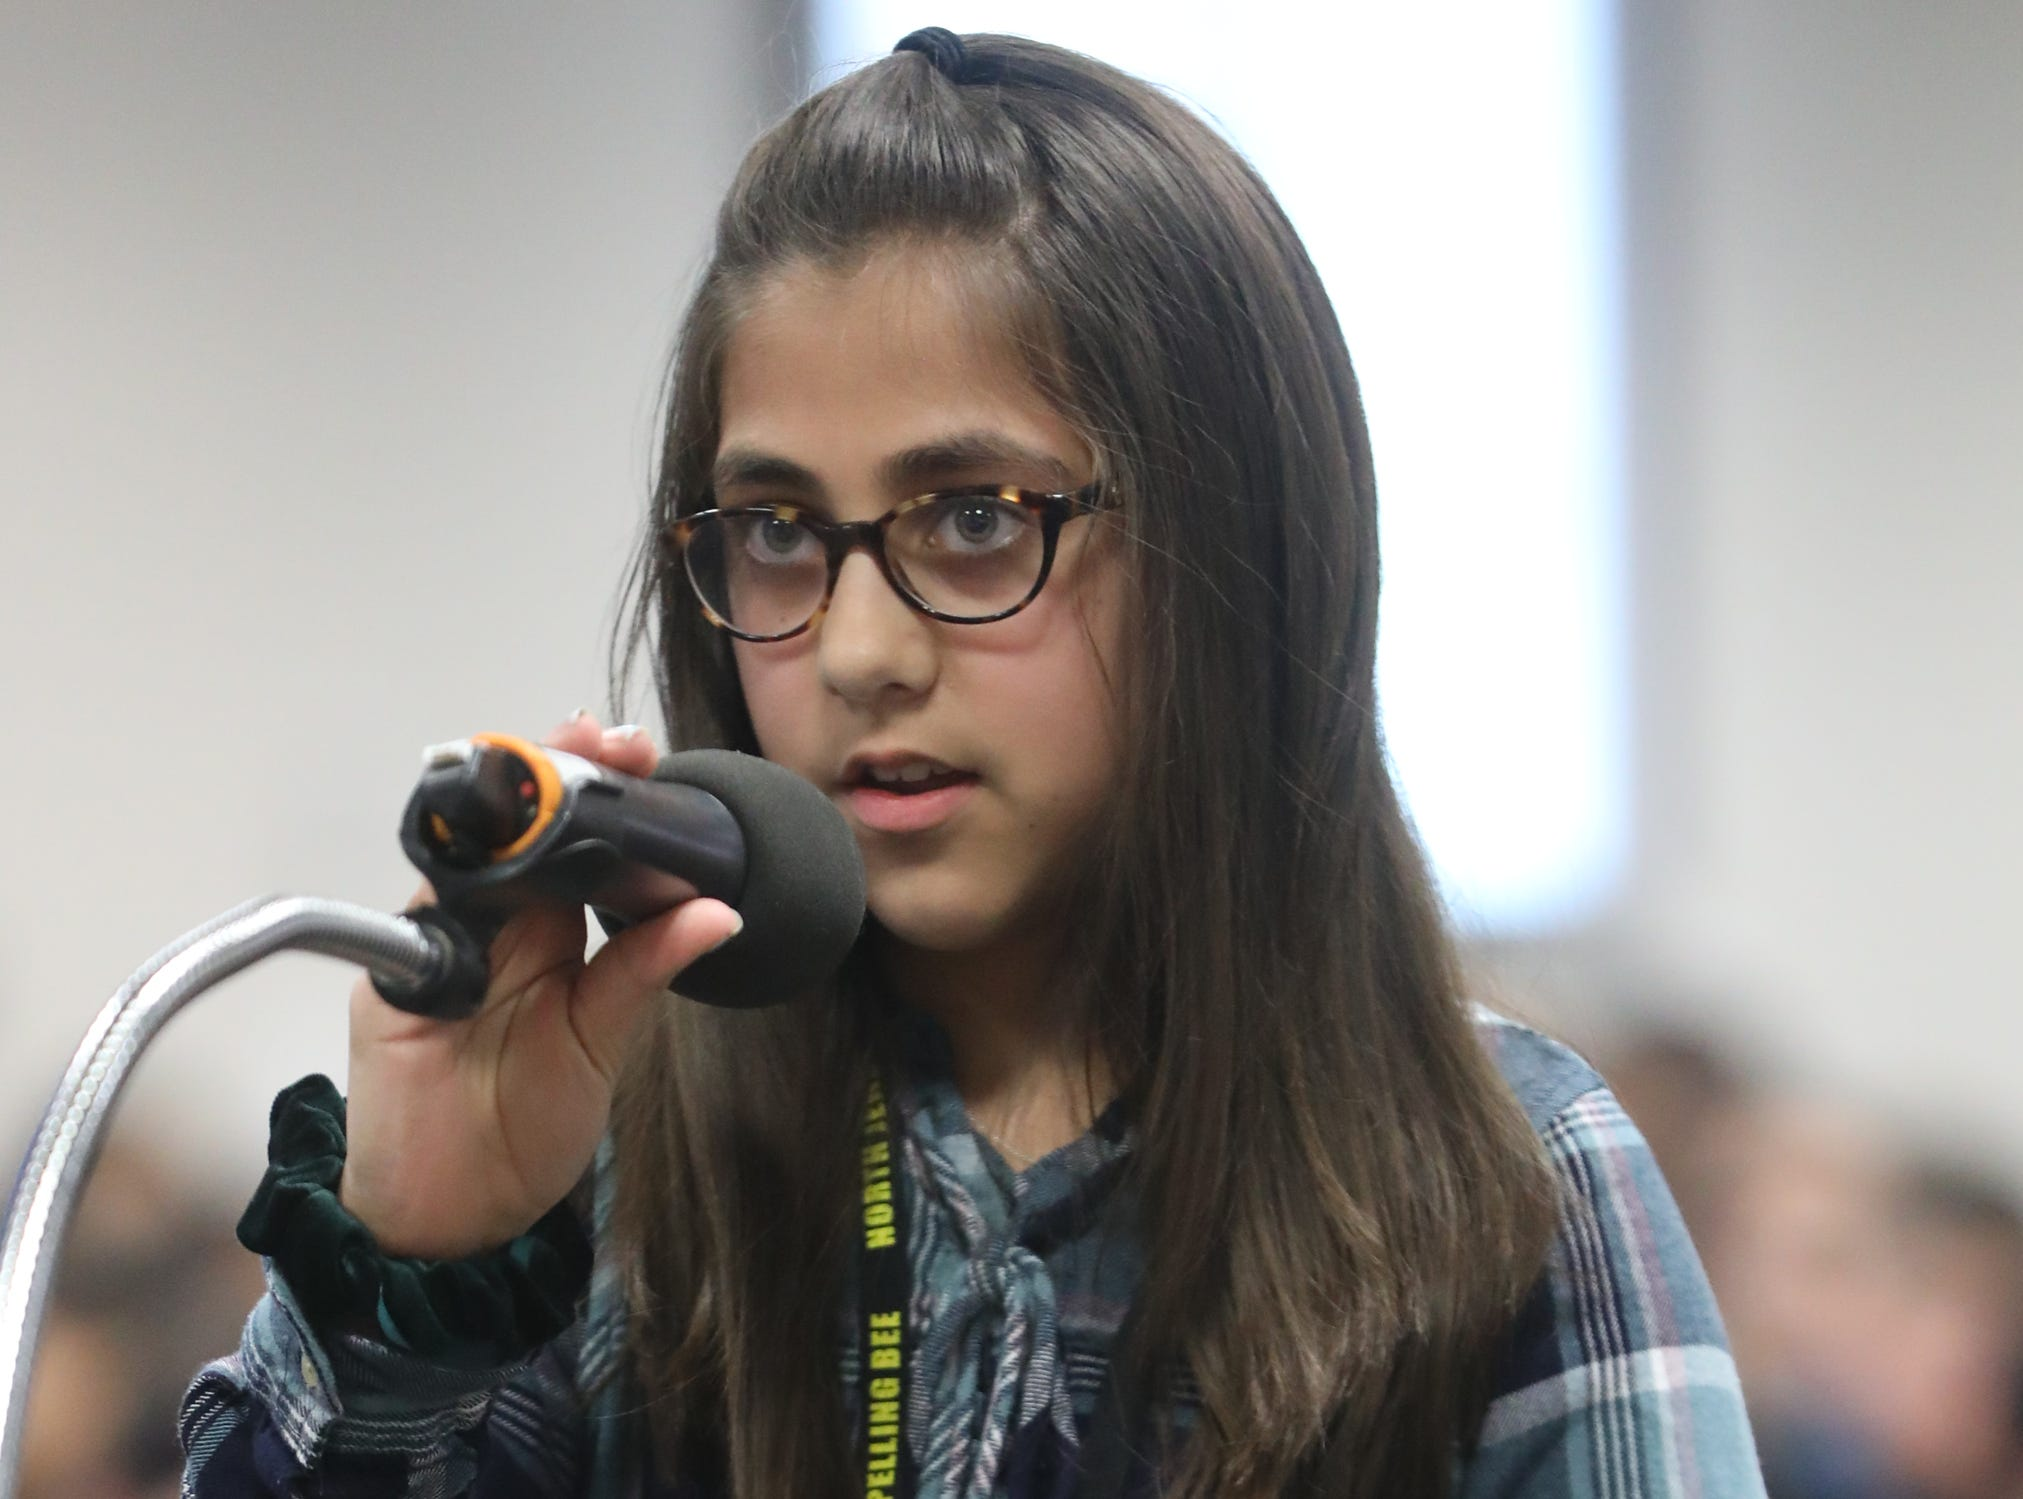 Layla Choudhri, of Alpine, competes in the first round of the 2019 North Jersey Spelling Bee, in Paramus. Thursday, March 14, 2019